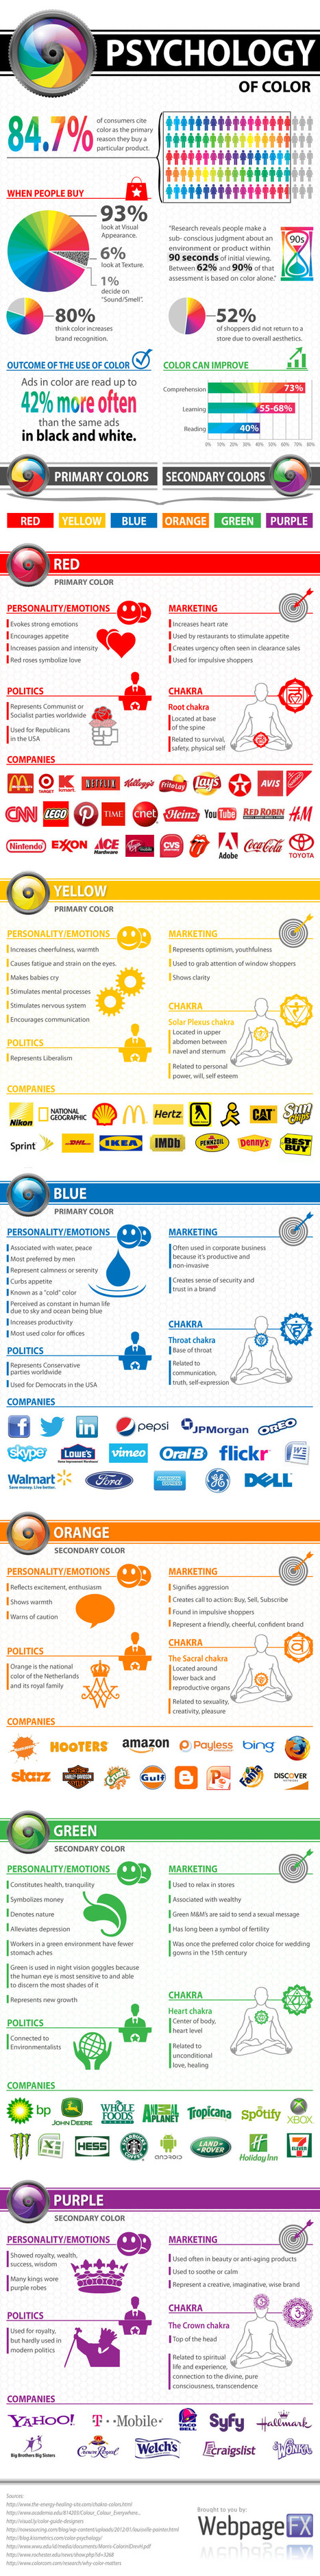 The Psychology of Color: How it Affects Buying Decisions [Infographic] | Hanson Zandi News | Scoop.it